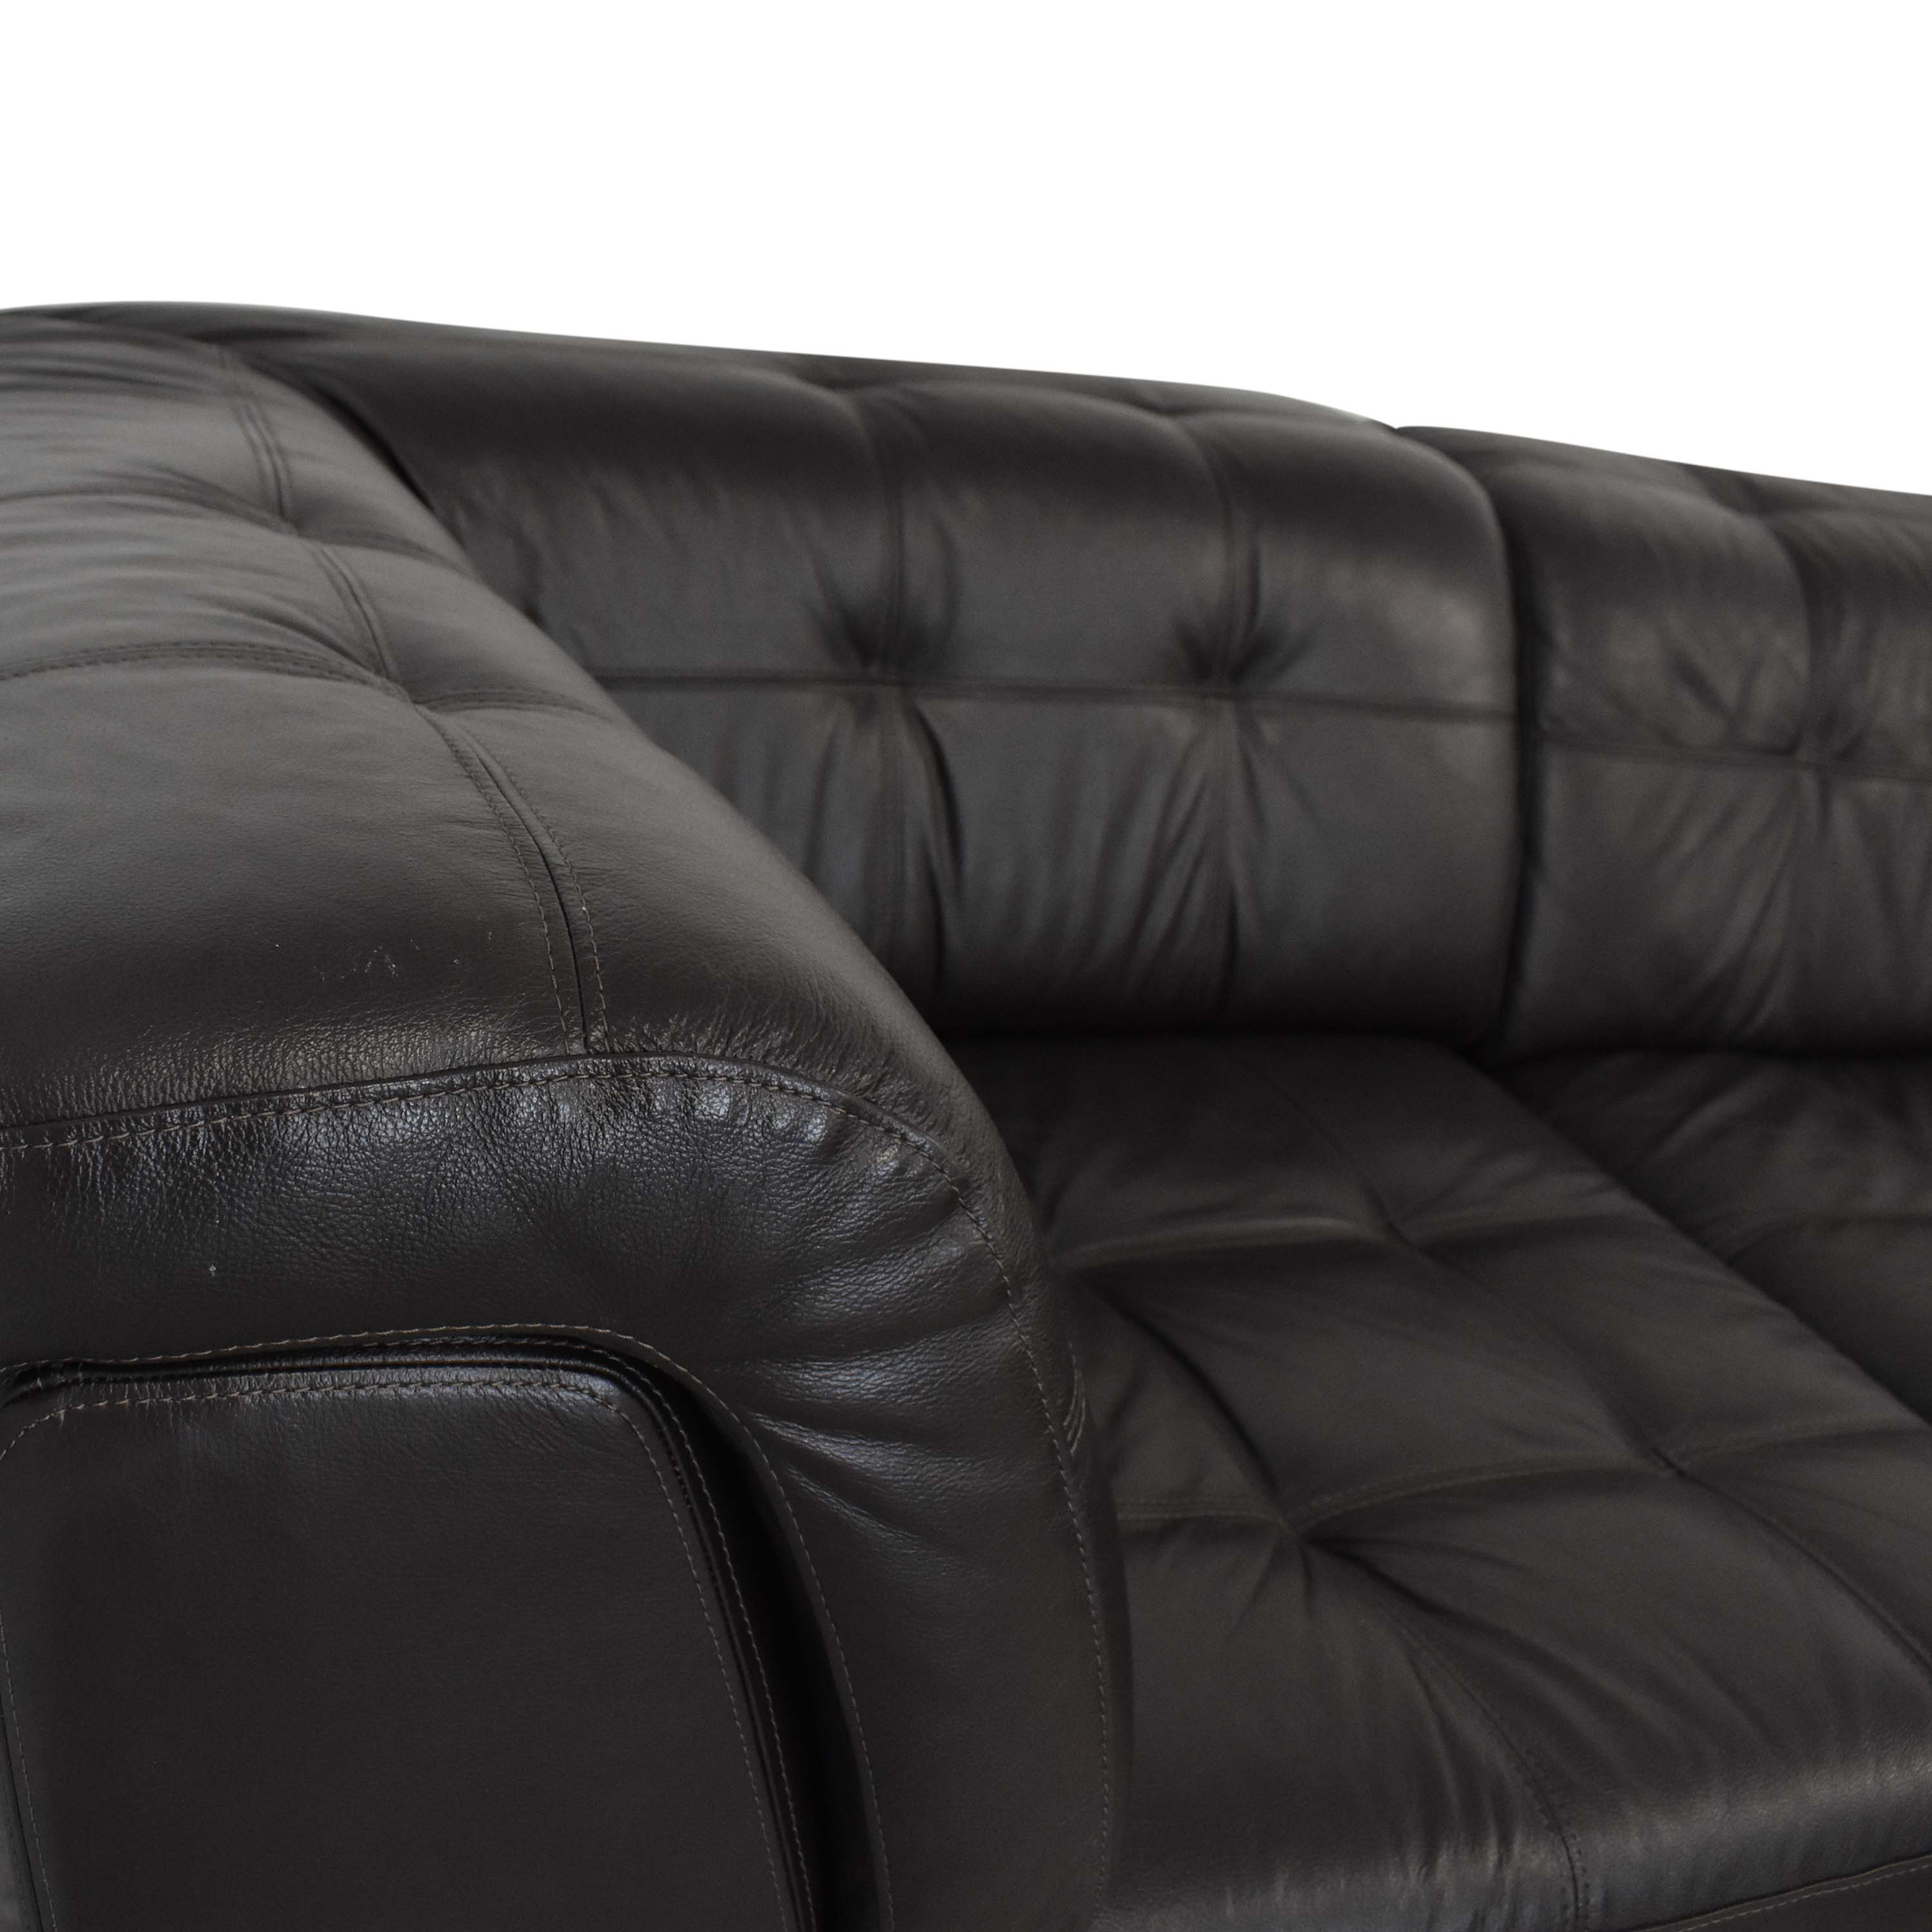 Chateau d'Ax Chateau d'Ax Stacey Modular Sectional Sofa ct